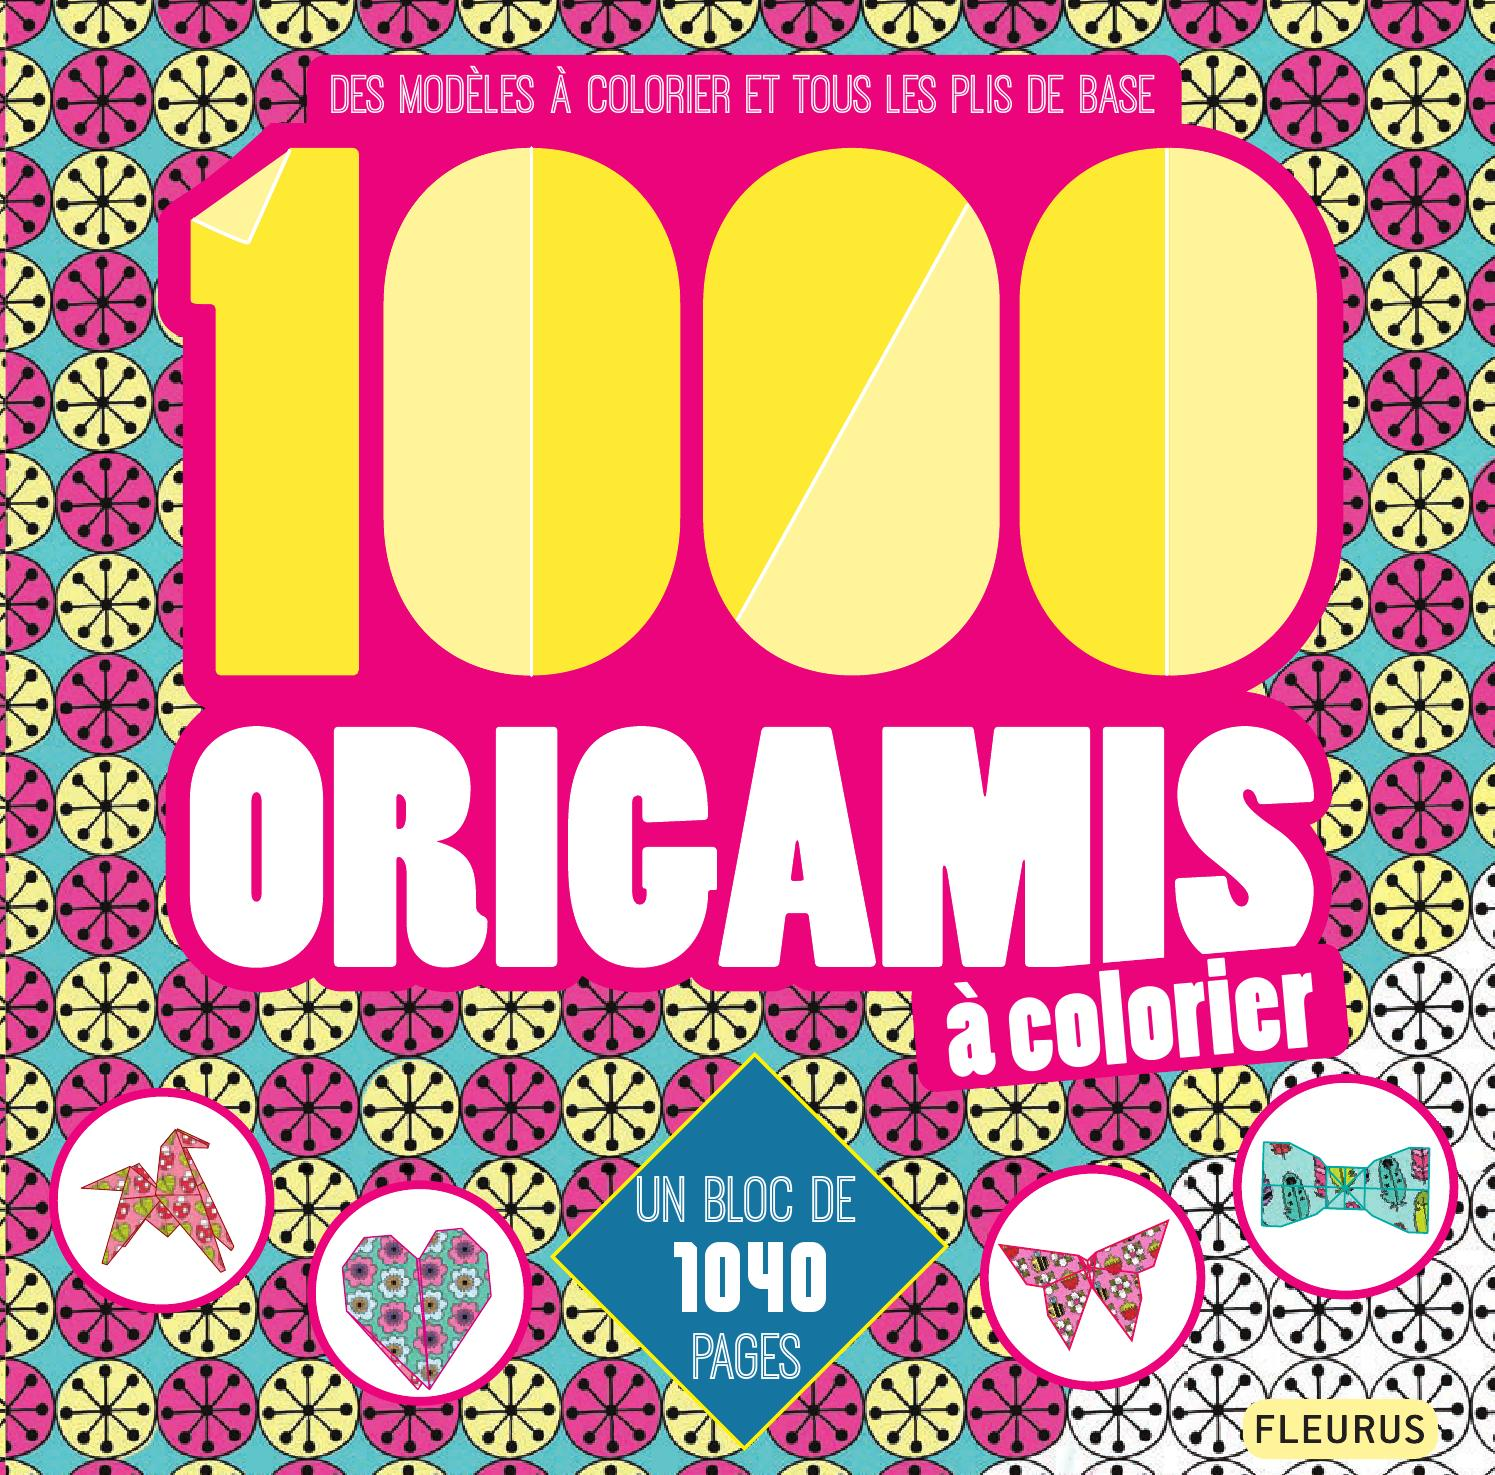 1000 origamis coloriage by fleurus editions